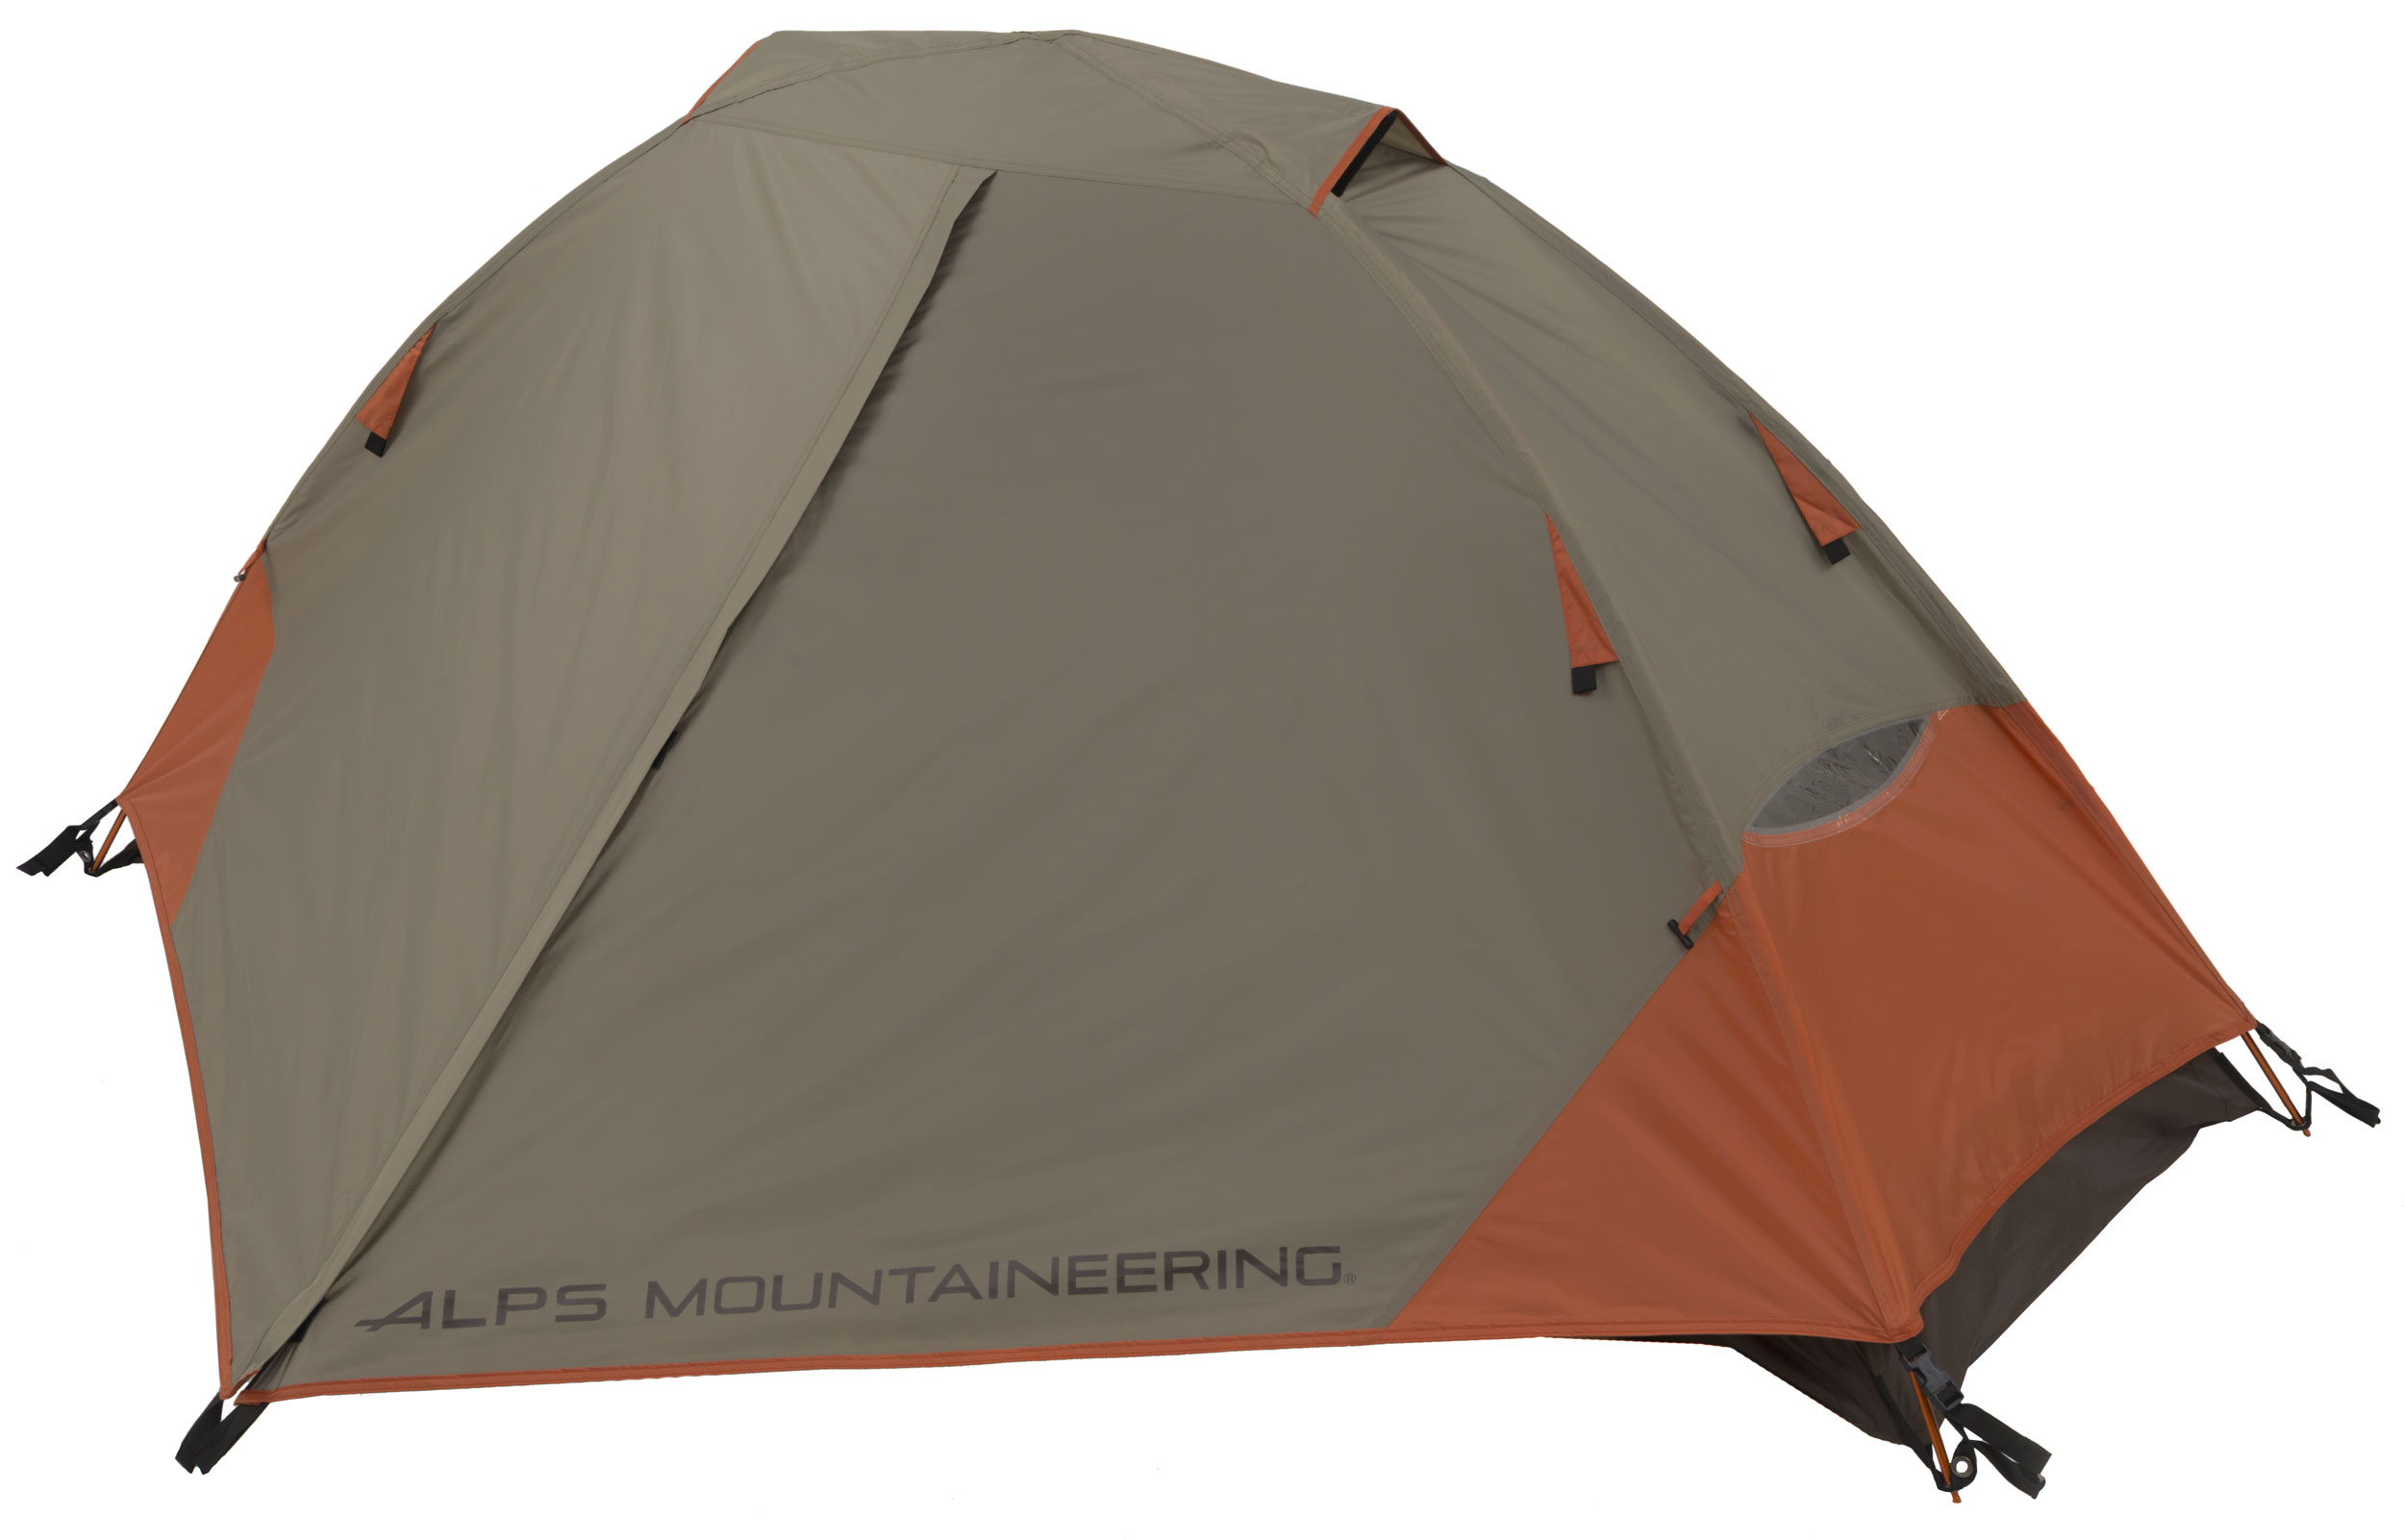 Double Walled Tent: Outer Shell